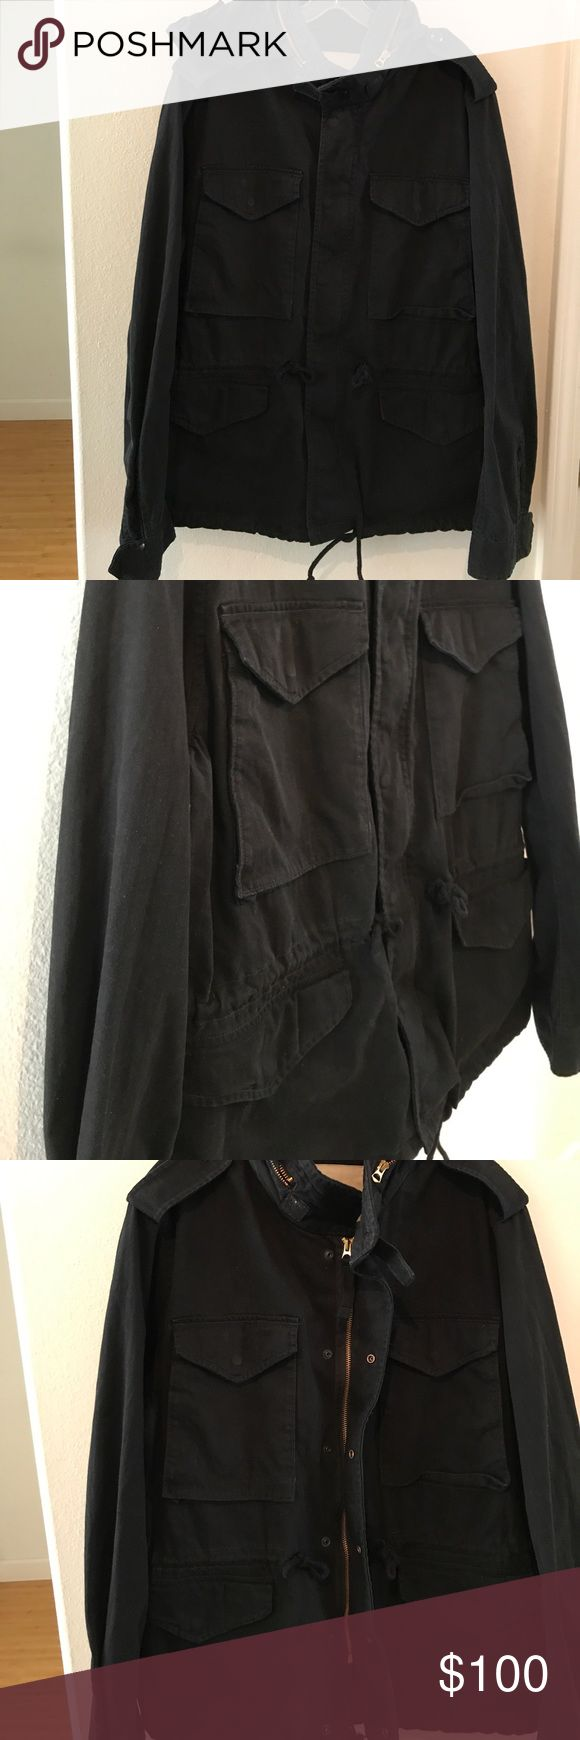 Ralph Lauren. Denim & Supply Military Jacket Black Utillity Coat. Hide the hood in the collar or wear it out! Four front snap close pockets. Draw string waist and bottom. VGUC. Denim & Supply Ralph Lauren Jackets & Coats Military & Field